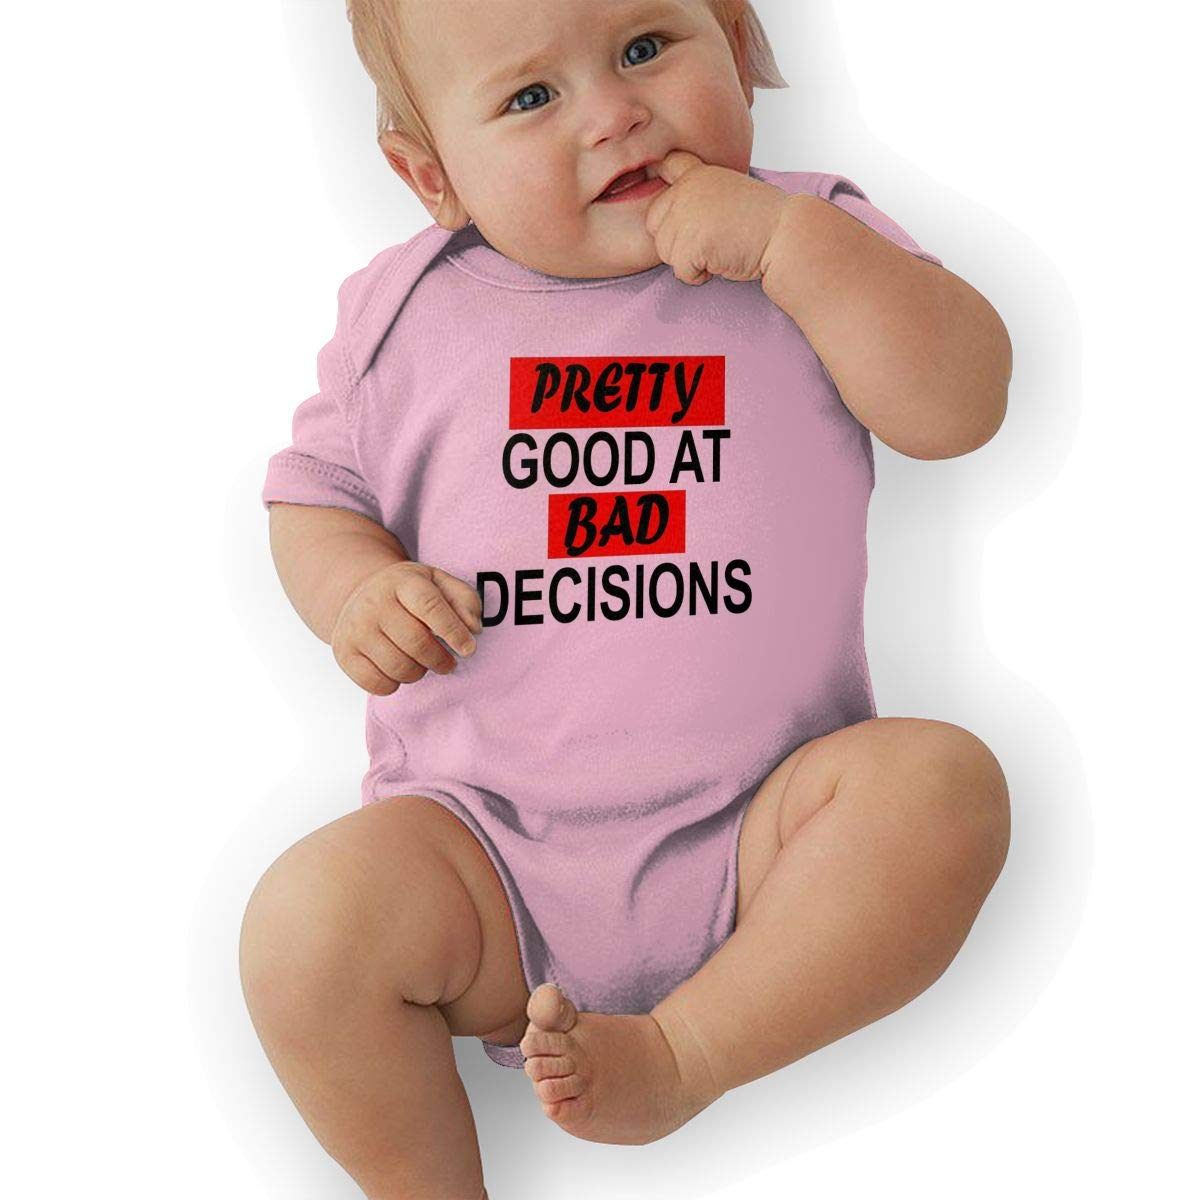 Infant Baby Boys Bodysuit Short-Sleeve Onesie Pretty Good at Bad Decisions Print Rompers Summer Pajamas